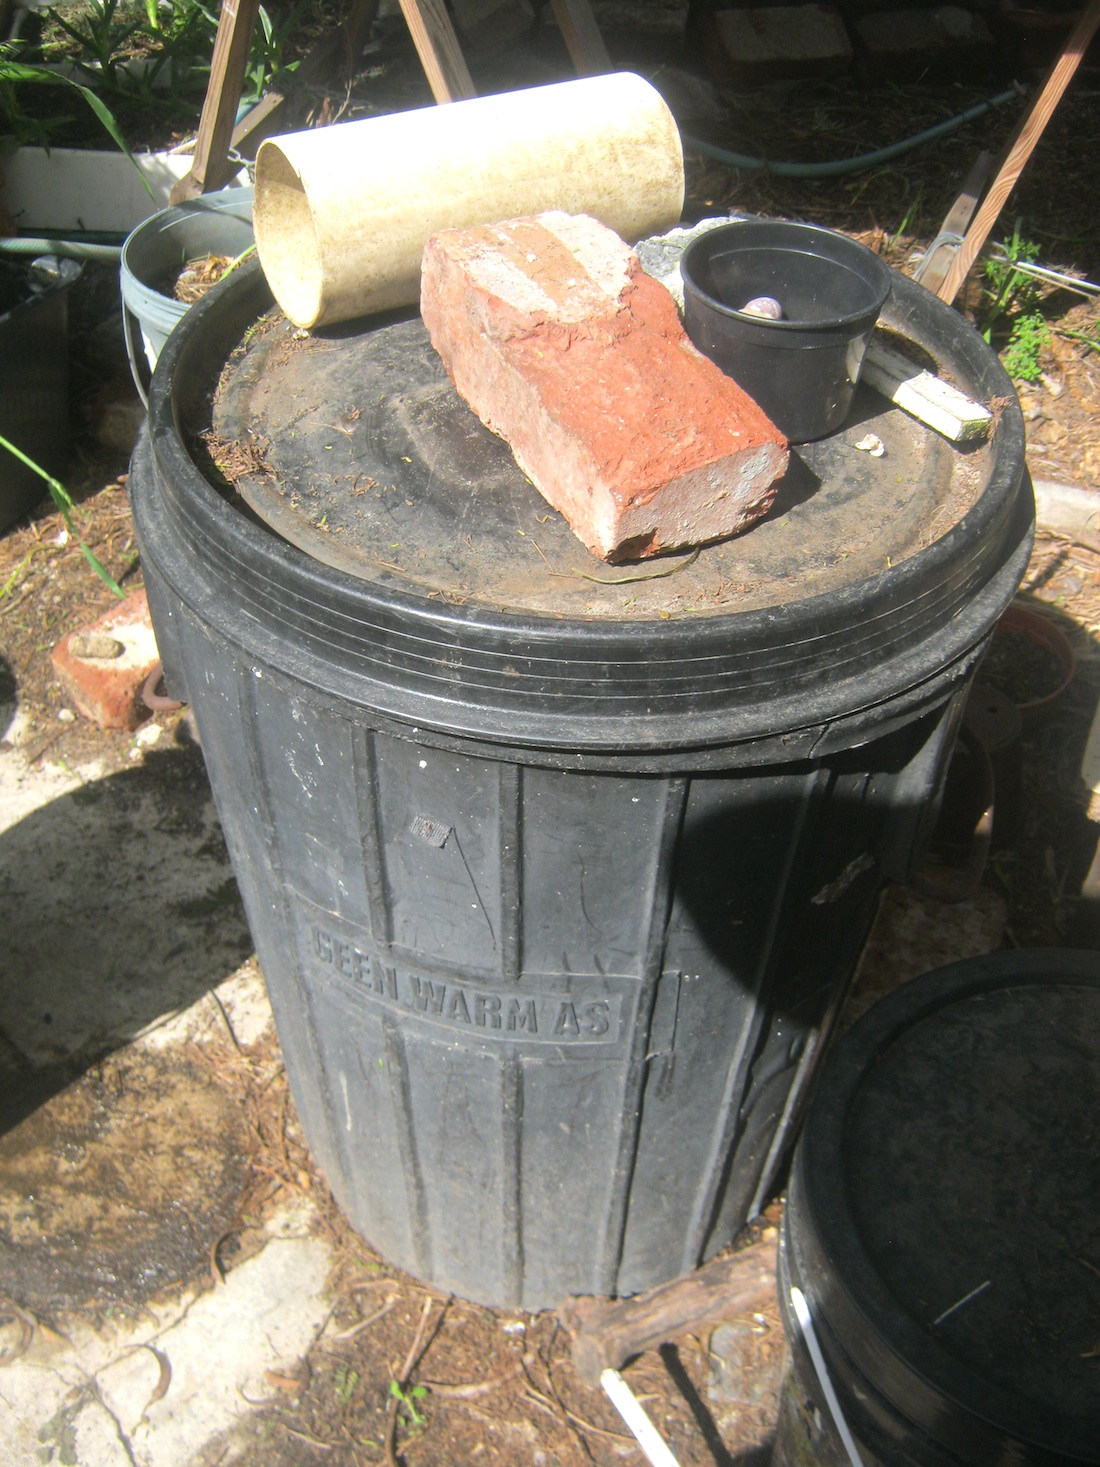 Old large waste bin converted into a worm bin. The bin has drainage holes at the bottom and an easy fitting lid.